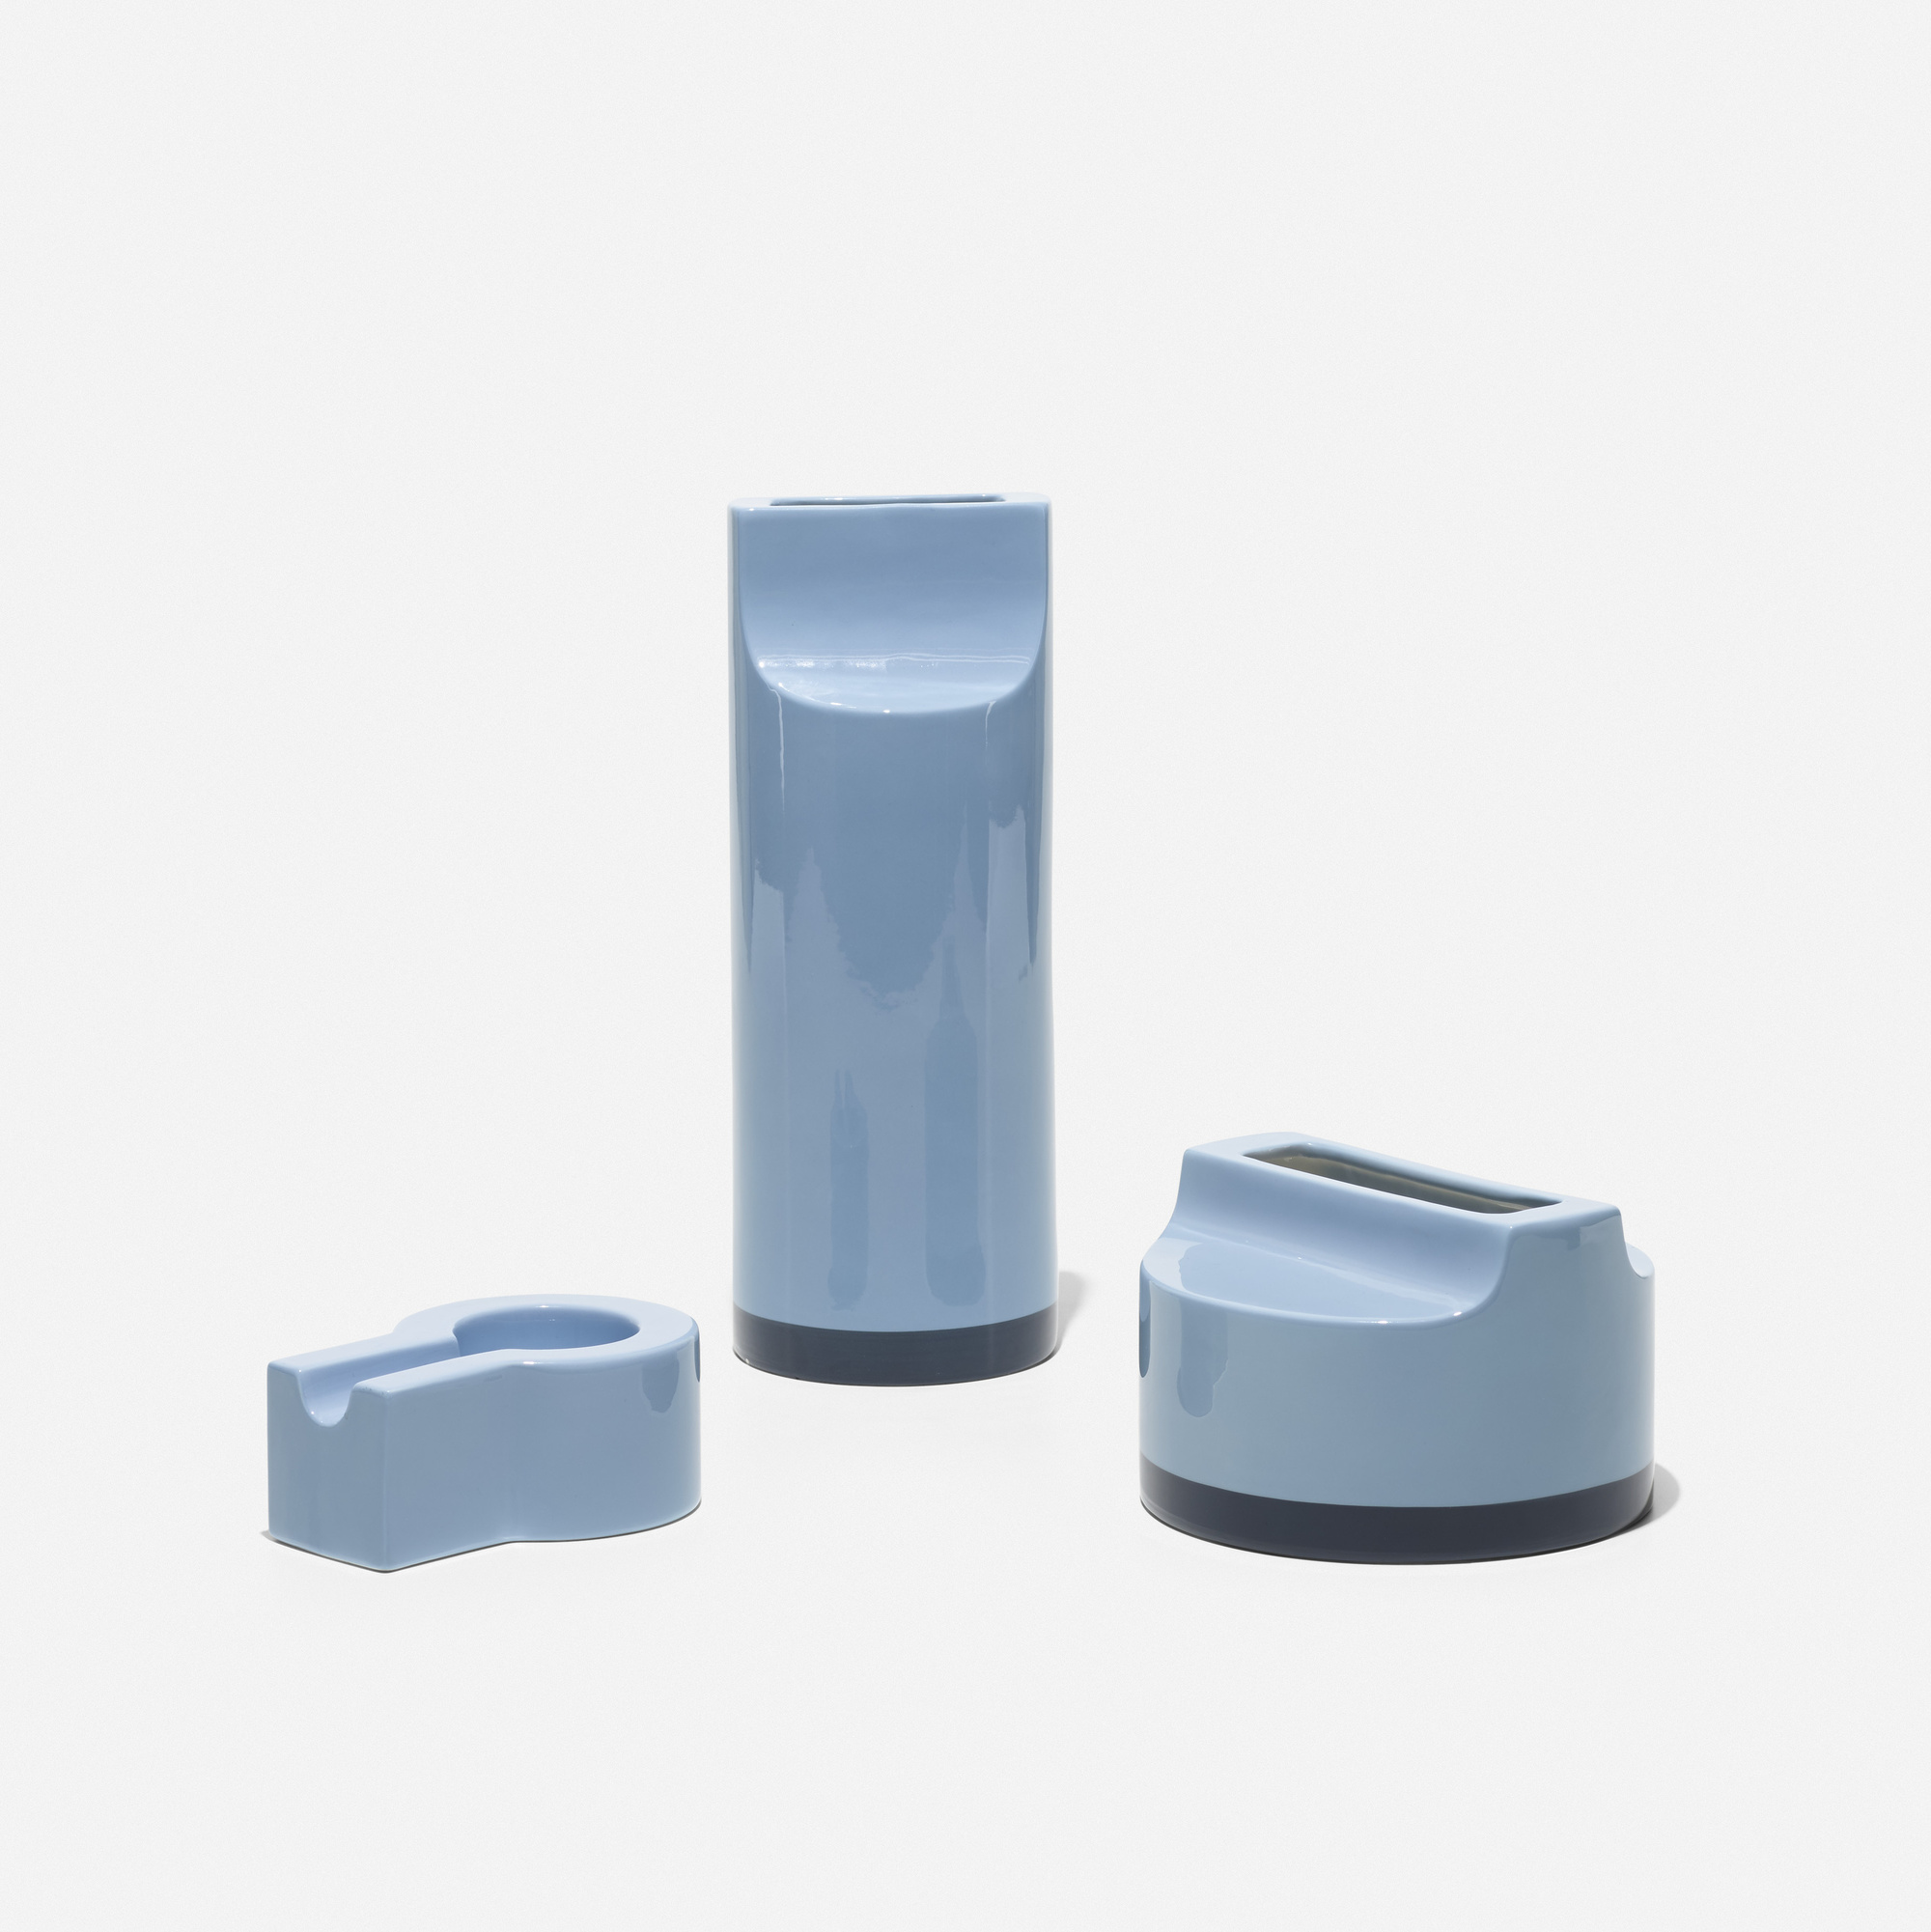 168: Ettore Sottsass / collection of three vessels (1 of 2)